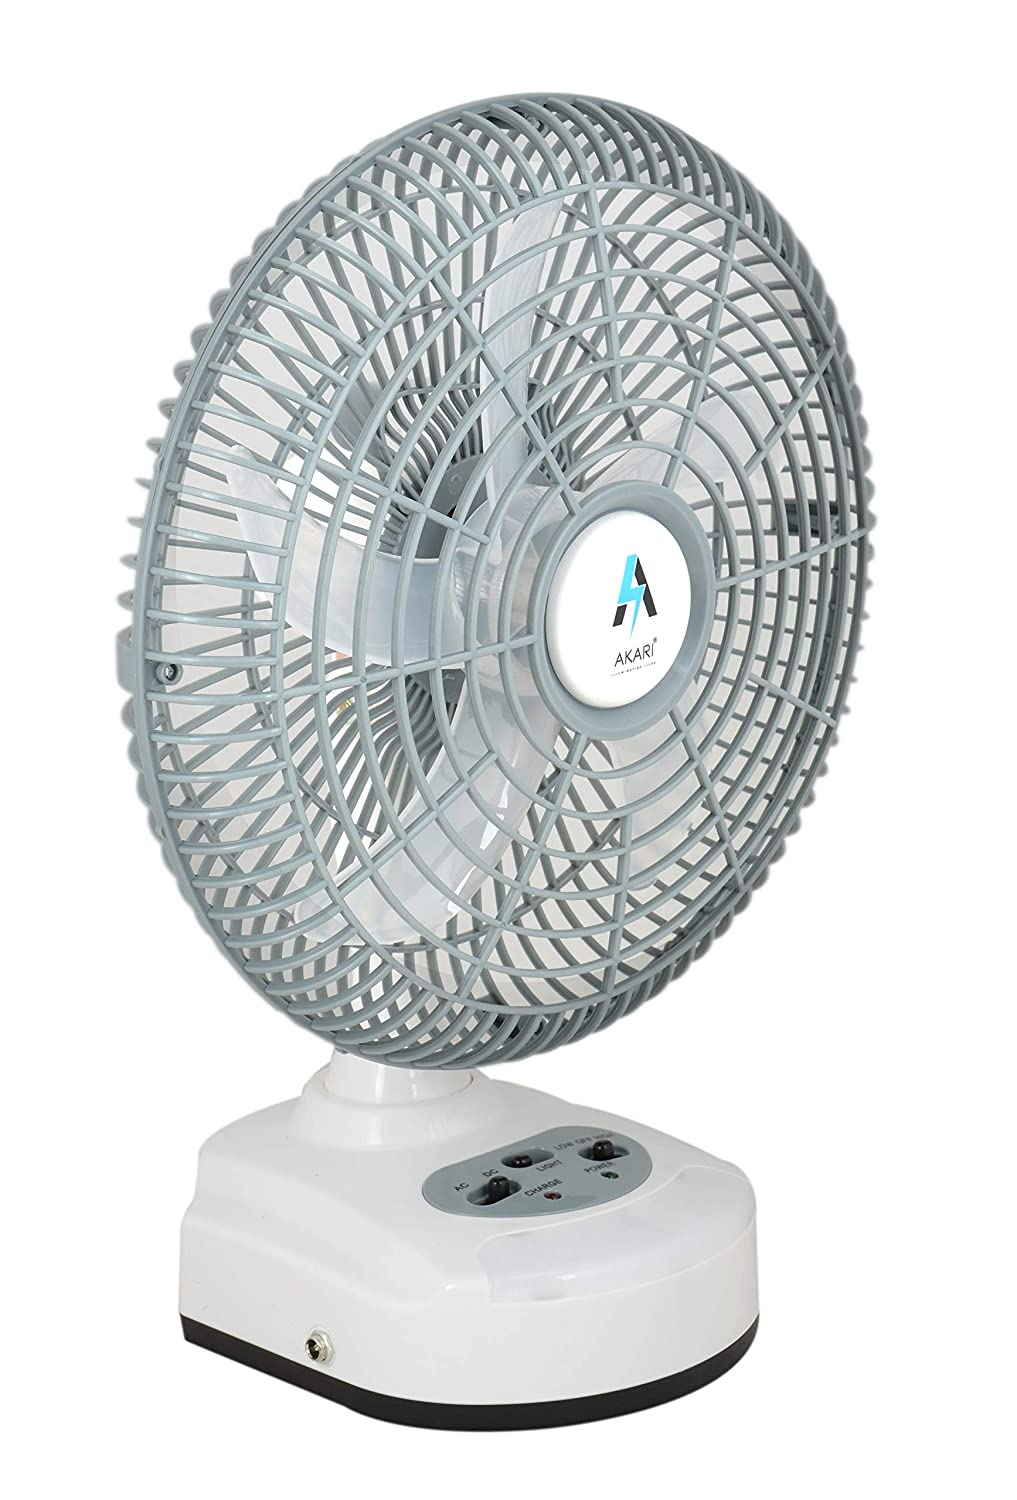 Buy Akari Ak 8010 10 Inch Table Fan With Ac Dc Facility And